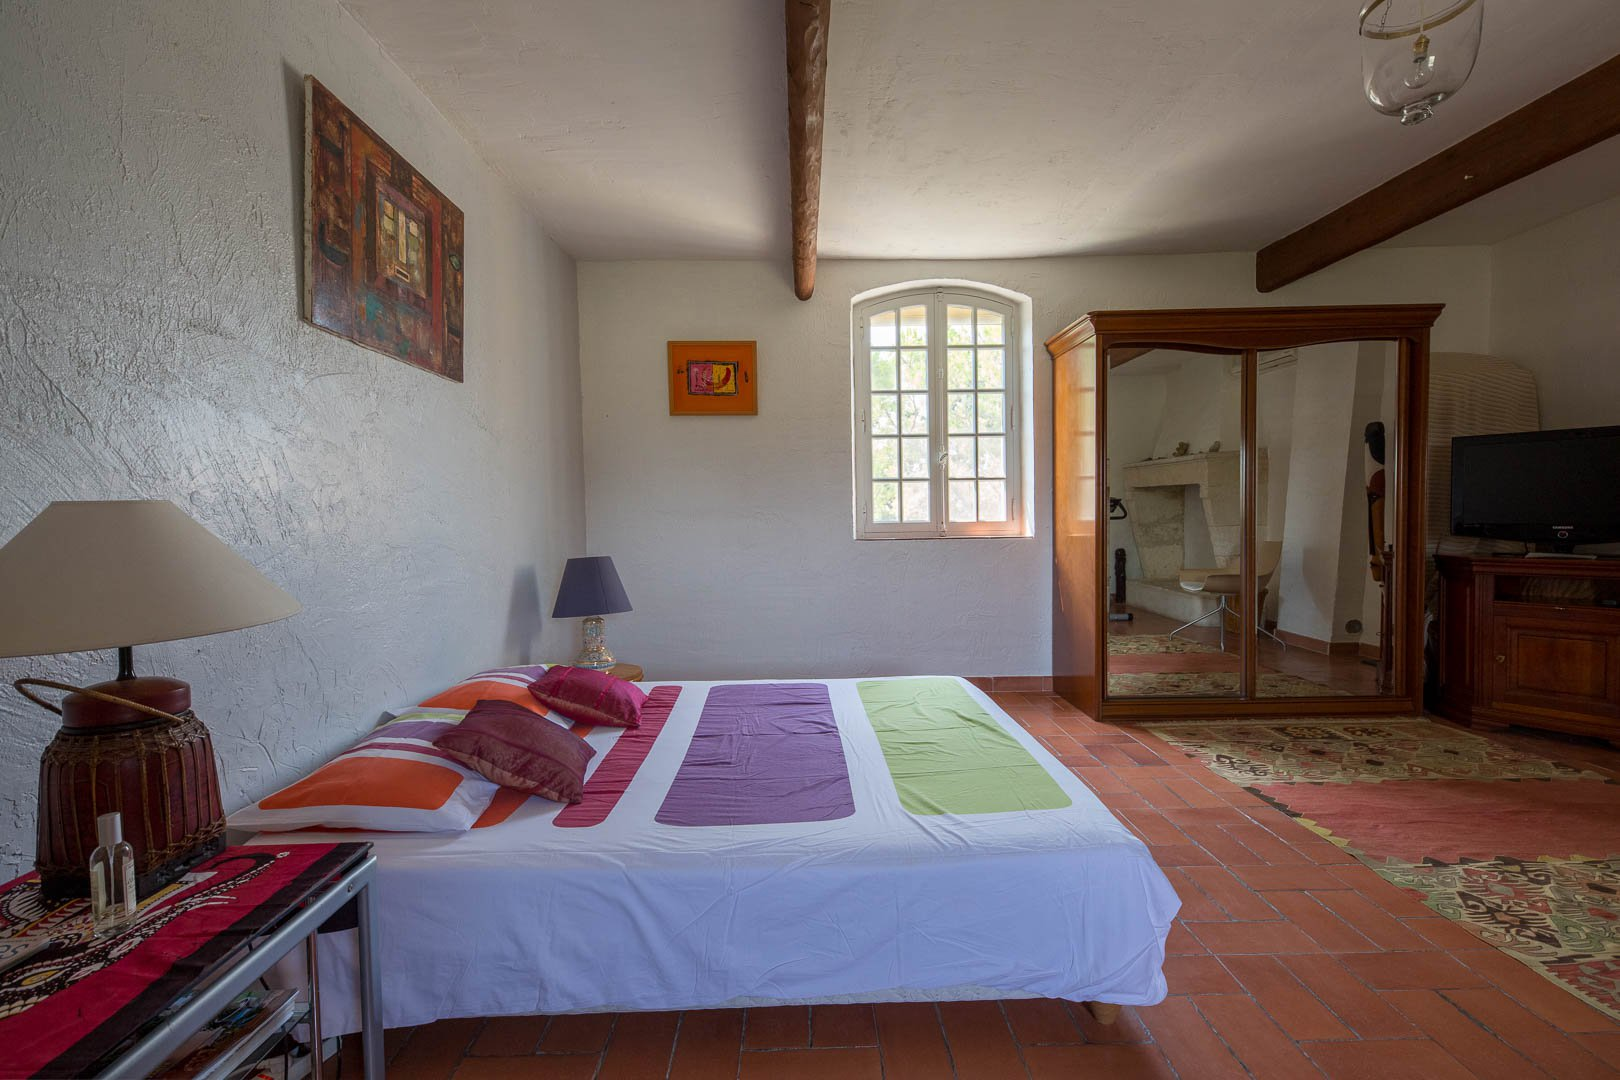 4 Bedroom Farmhouse for sale close to Arles and the Camargue